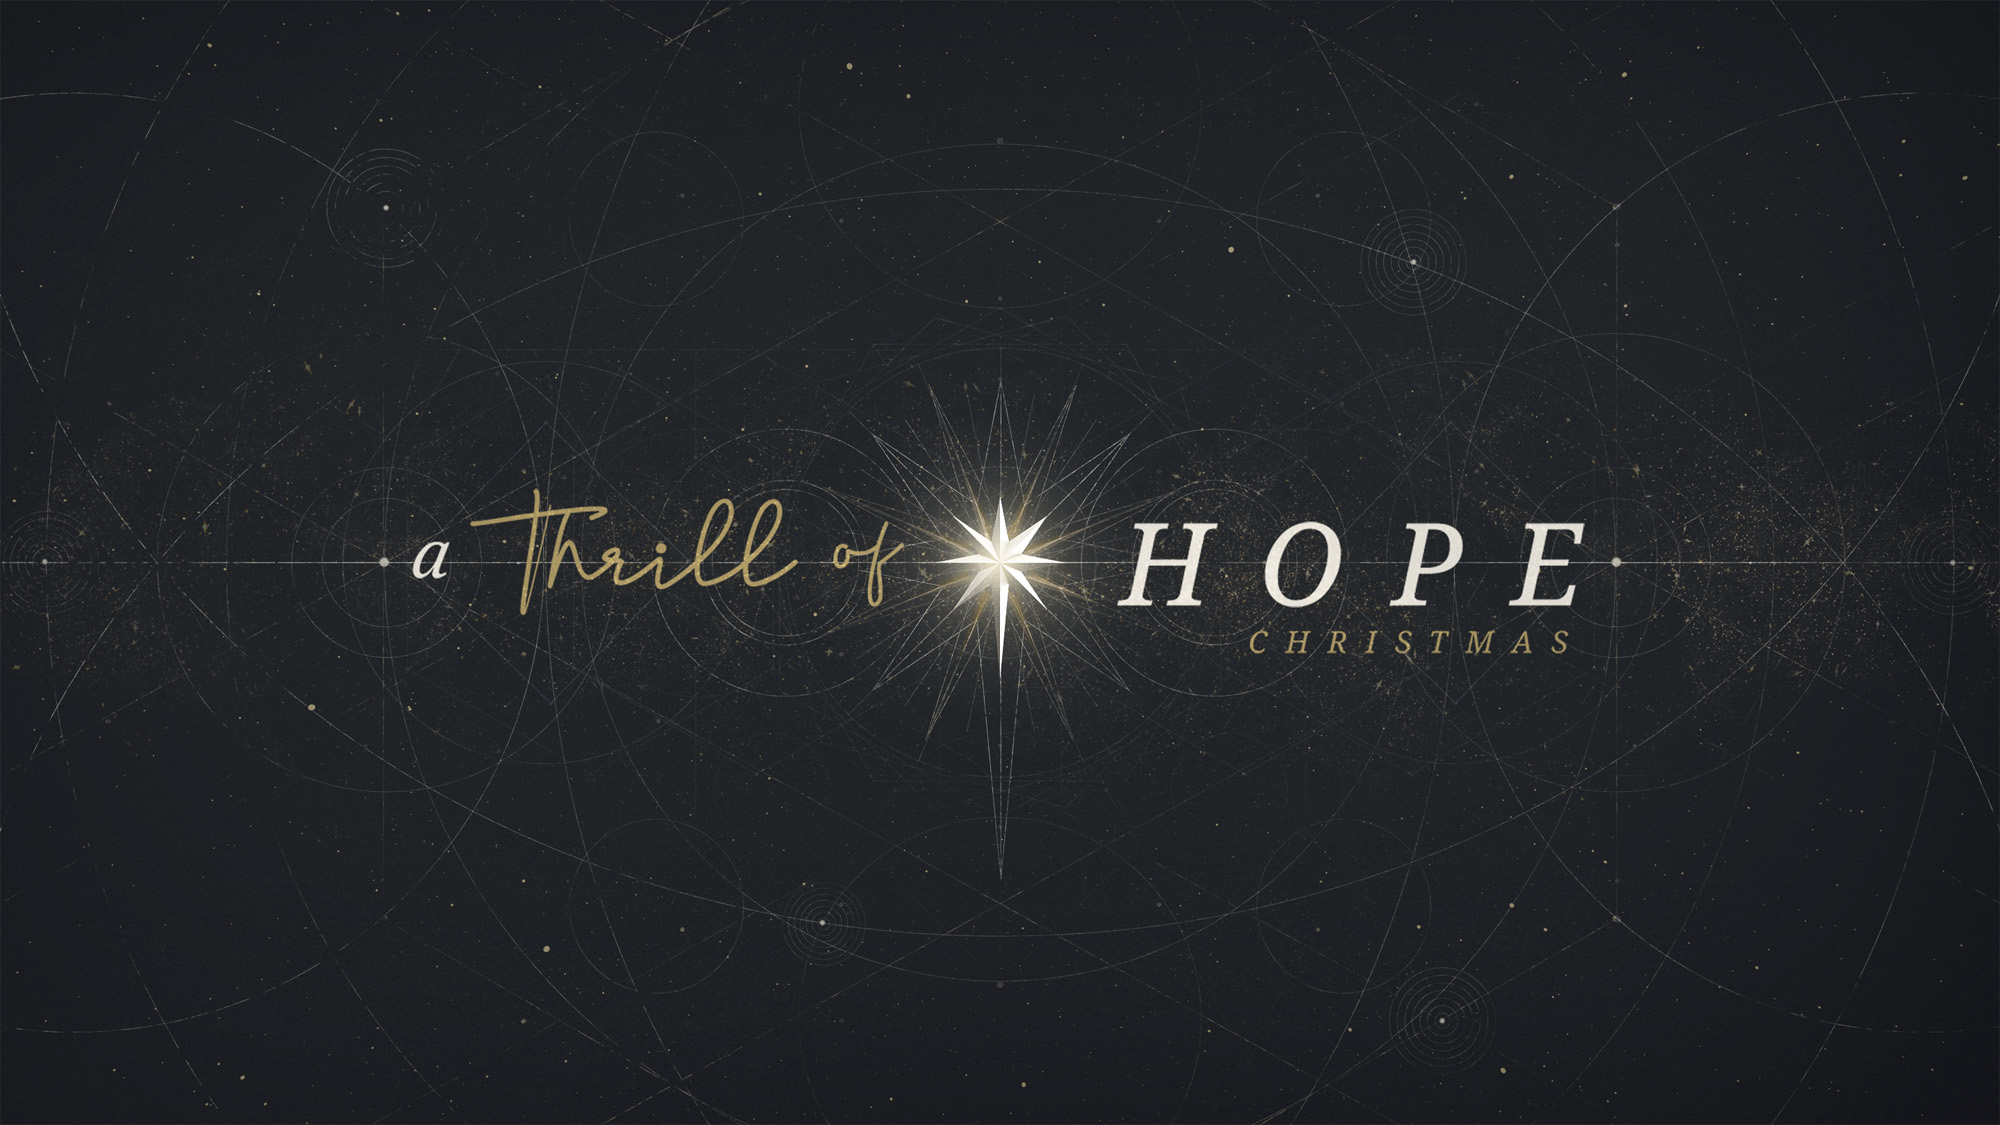 a_thrill_of_hope-title-1-Wide 16x9.jpg